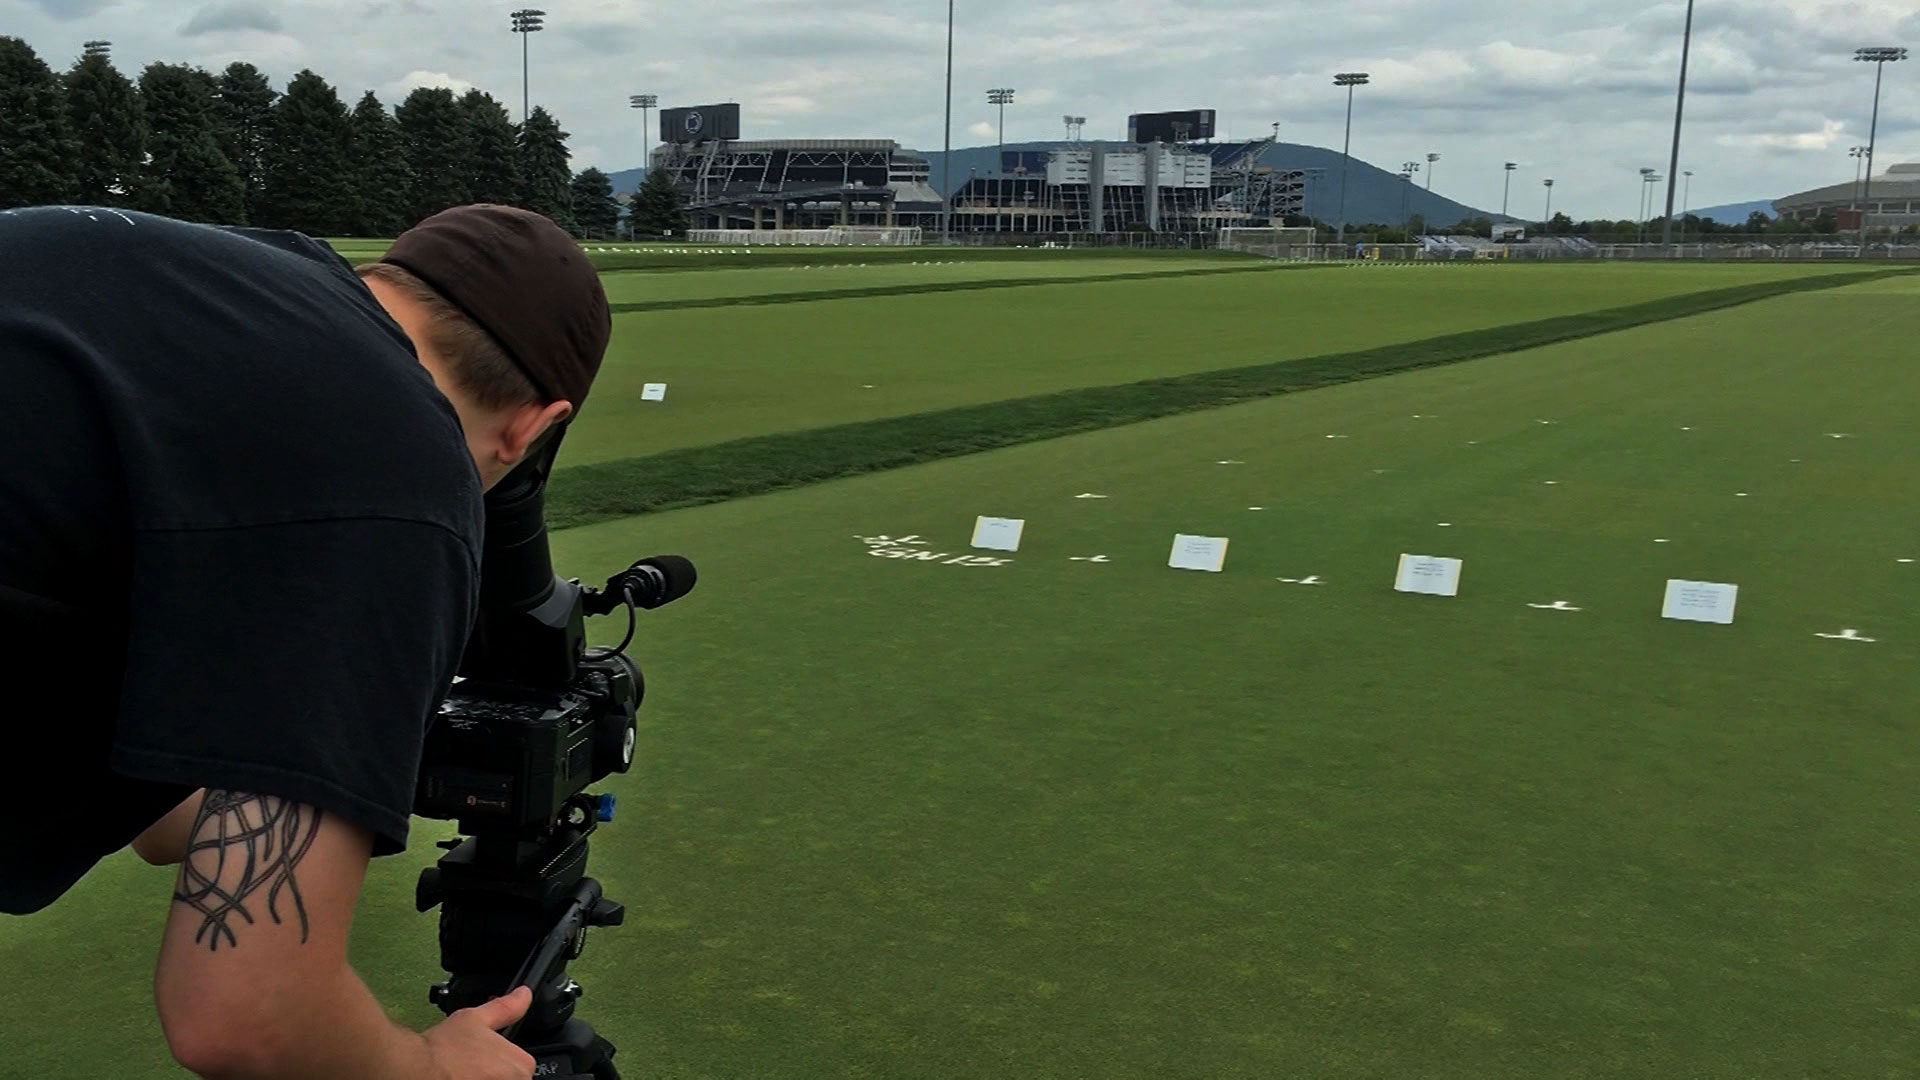 Videographer shoots video of turf grass